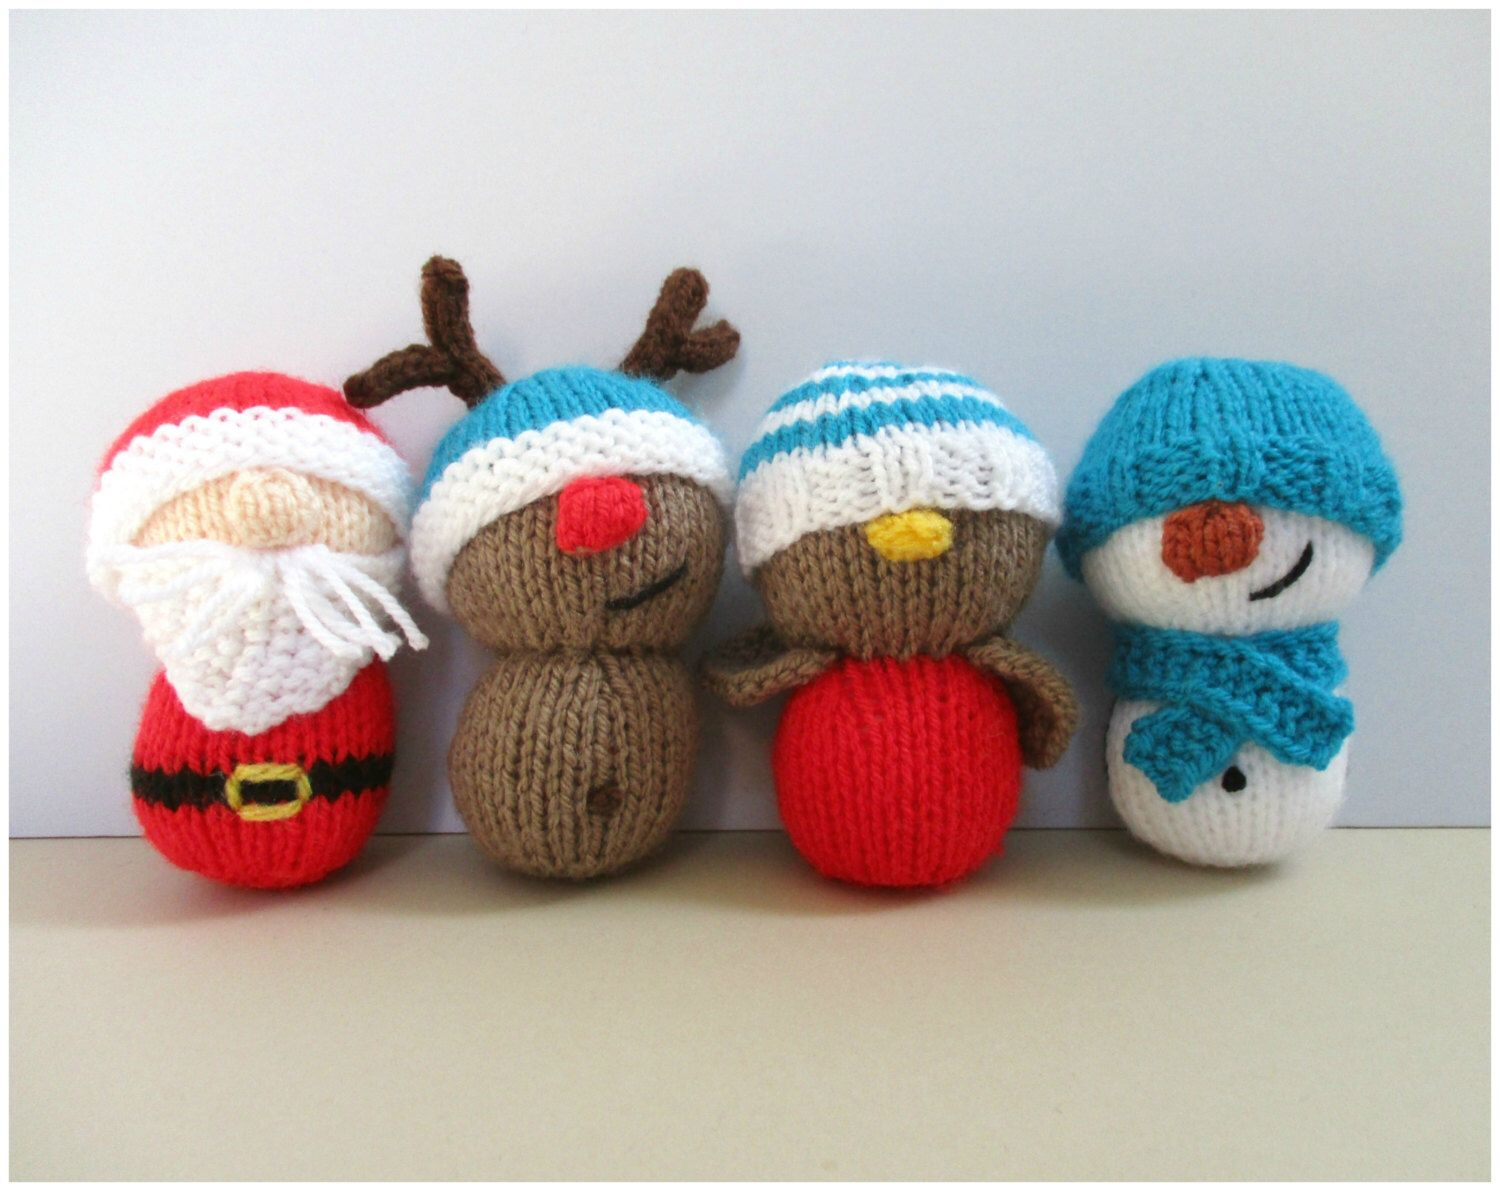 Dinky Christmas toys knitting patterns by fluffandfuzz on Etsy https ...